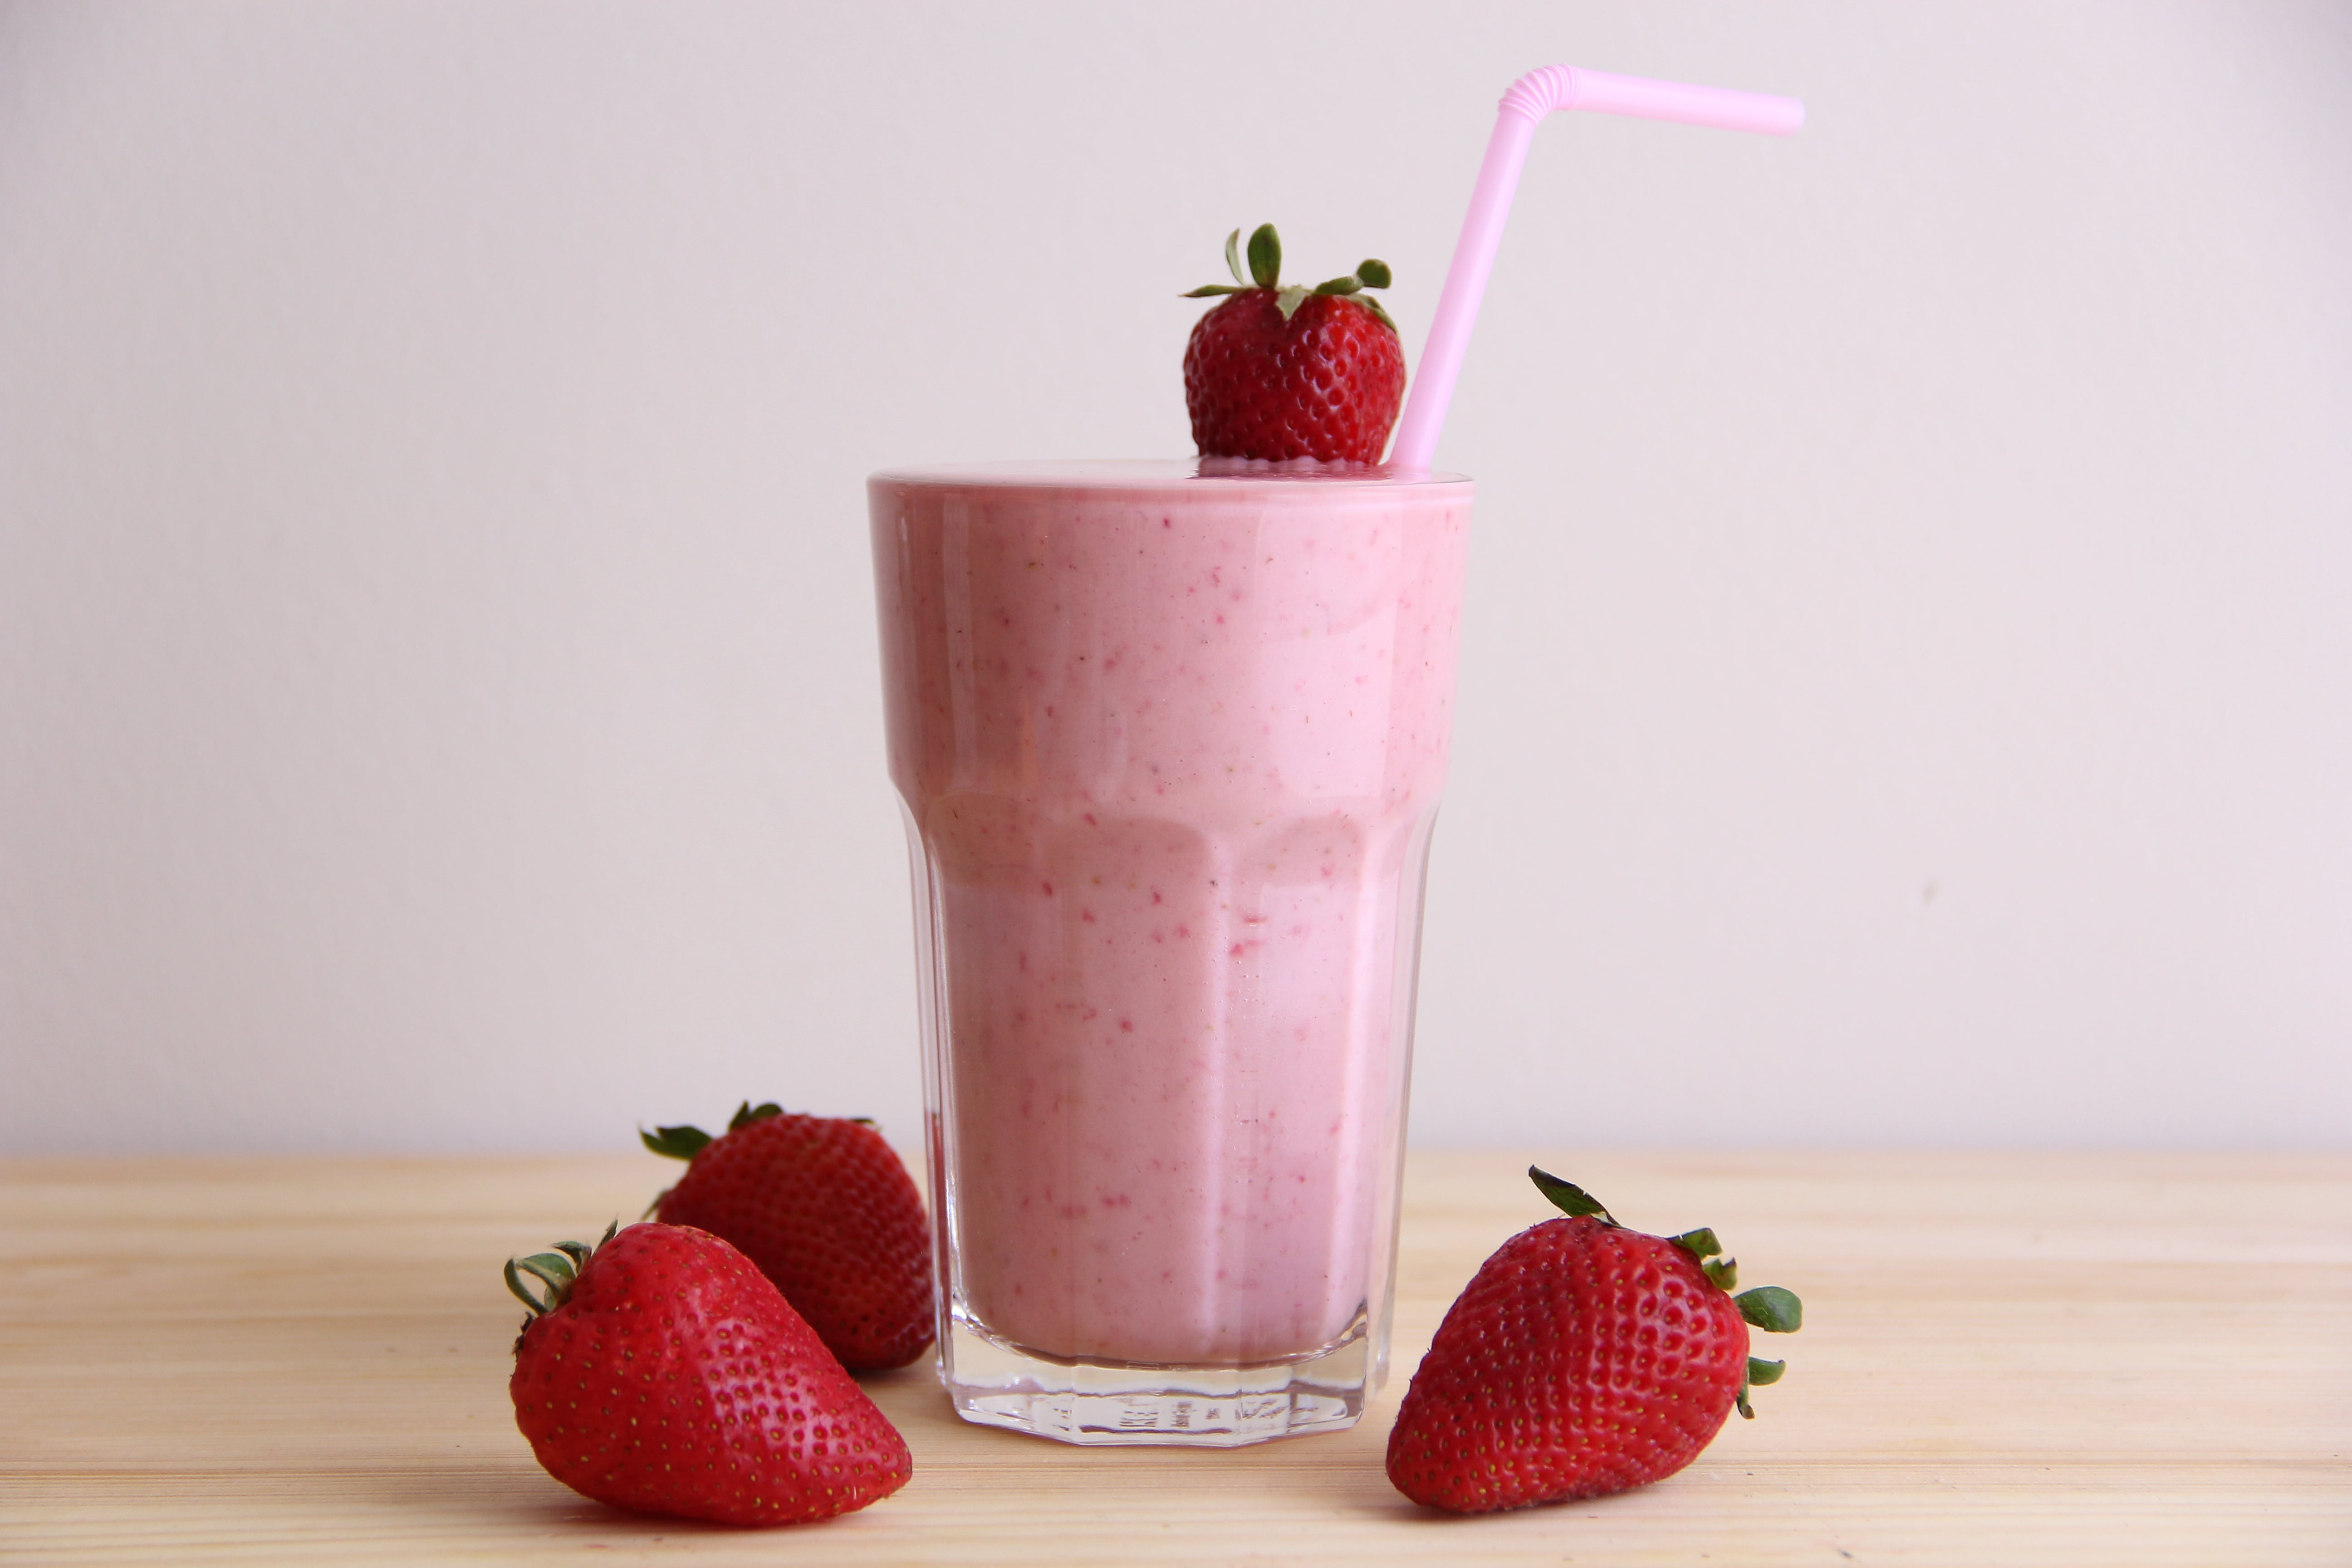 strawberry banana smoothie in a glass with whole strawberries | goodMix Superfoods